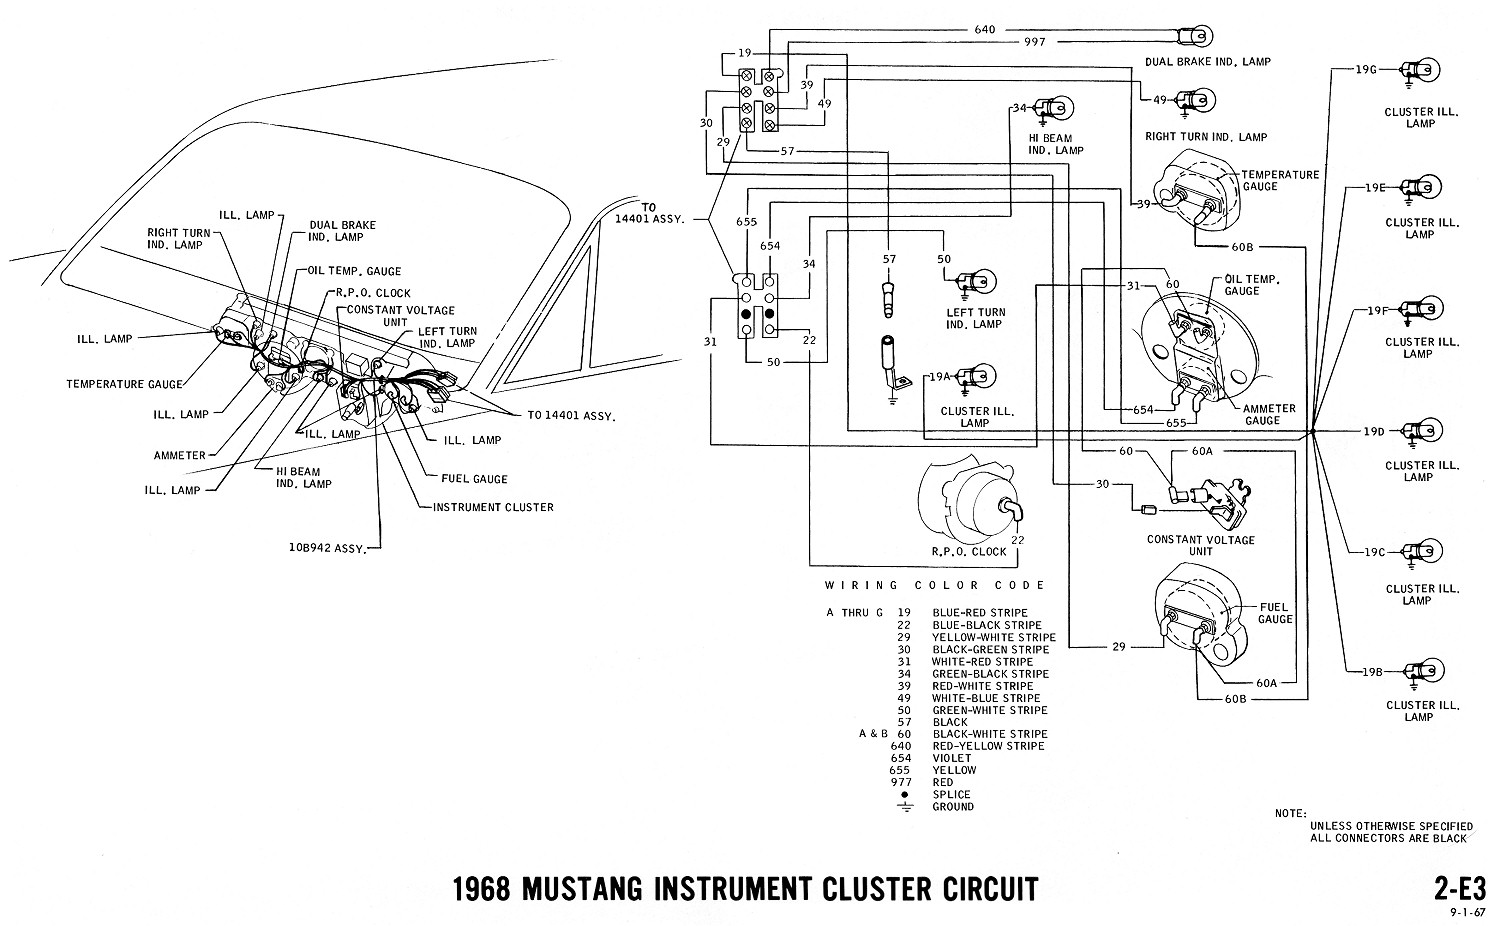 1965 Mustang Solenoid Wiring Diagram besides 1965 Mustang 289 Engine Diagram besides 1967 Mustang Wiring And Vacuum Diagrams as well 1968 Mustang Wiring Diagram Vacuum Schematics together with 1007265 Wiring Diagram 1951 F 1 A. on 65 mustang starter solenoid wiring